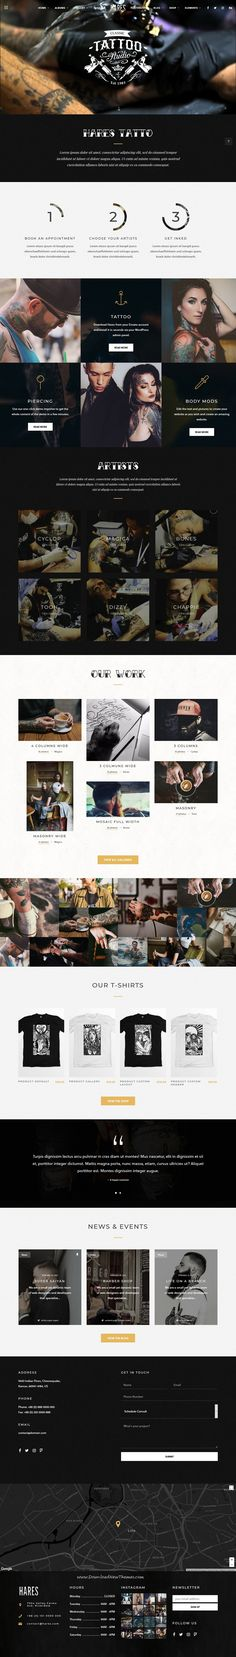 Buy Hares - A Stylish WordPress Theme by Wolf-Themes on ThemeForest. Hares is a vintage and stylish WordPress theme for your tattoo salon, barbershop, pub, restaurant, motorcycle club e. Tattoo Salon, Tattoo Studio, Tattoo Website, Professional Website, Web Layout, Barber Shop, Wordpress Theme, Layouts, Modern Design